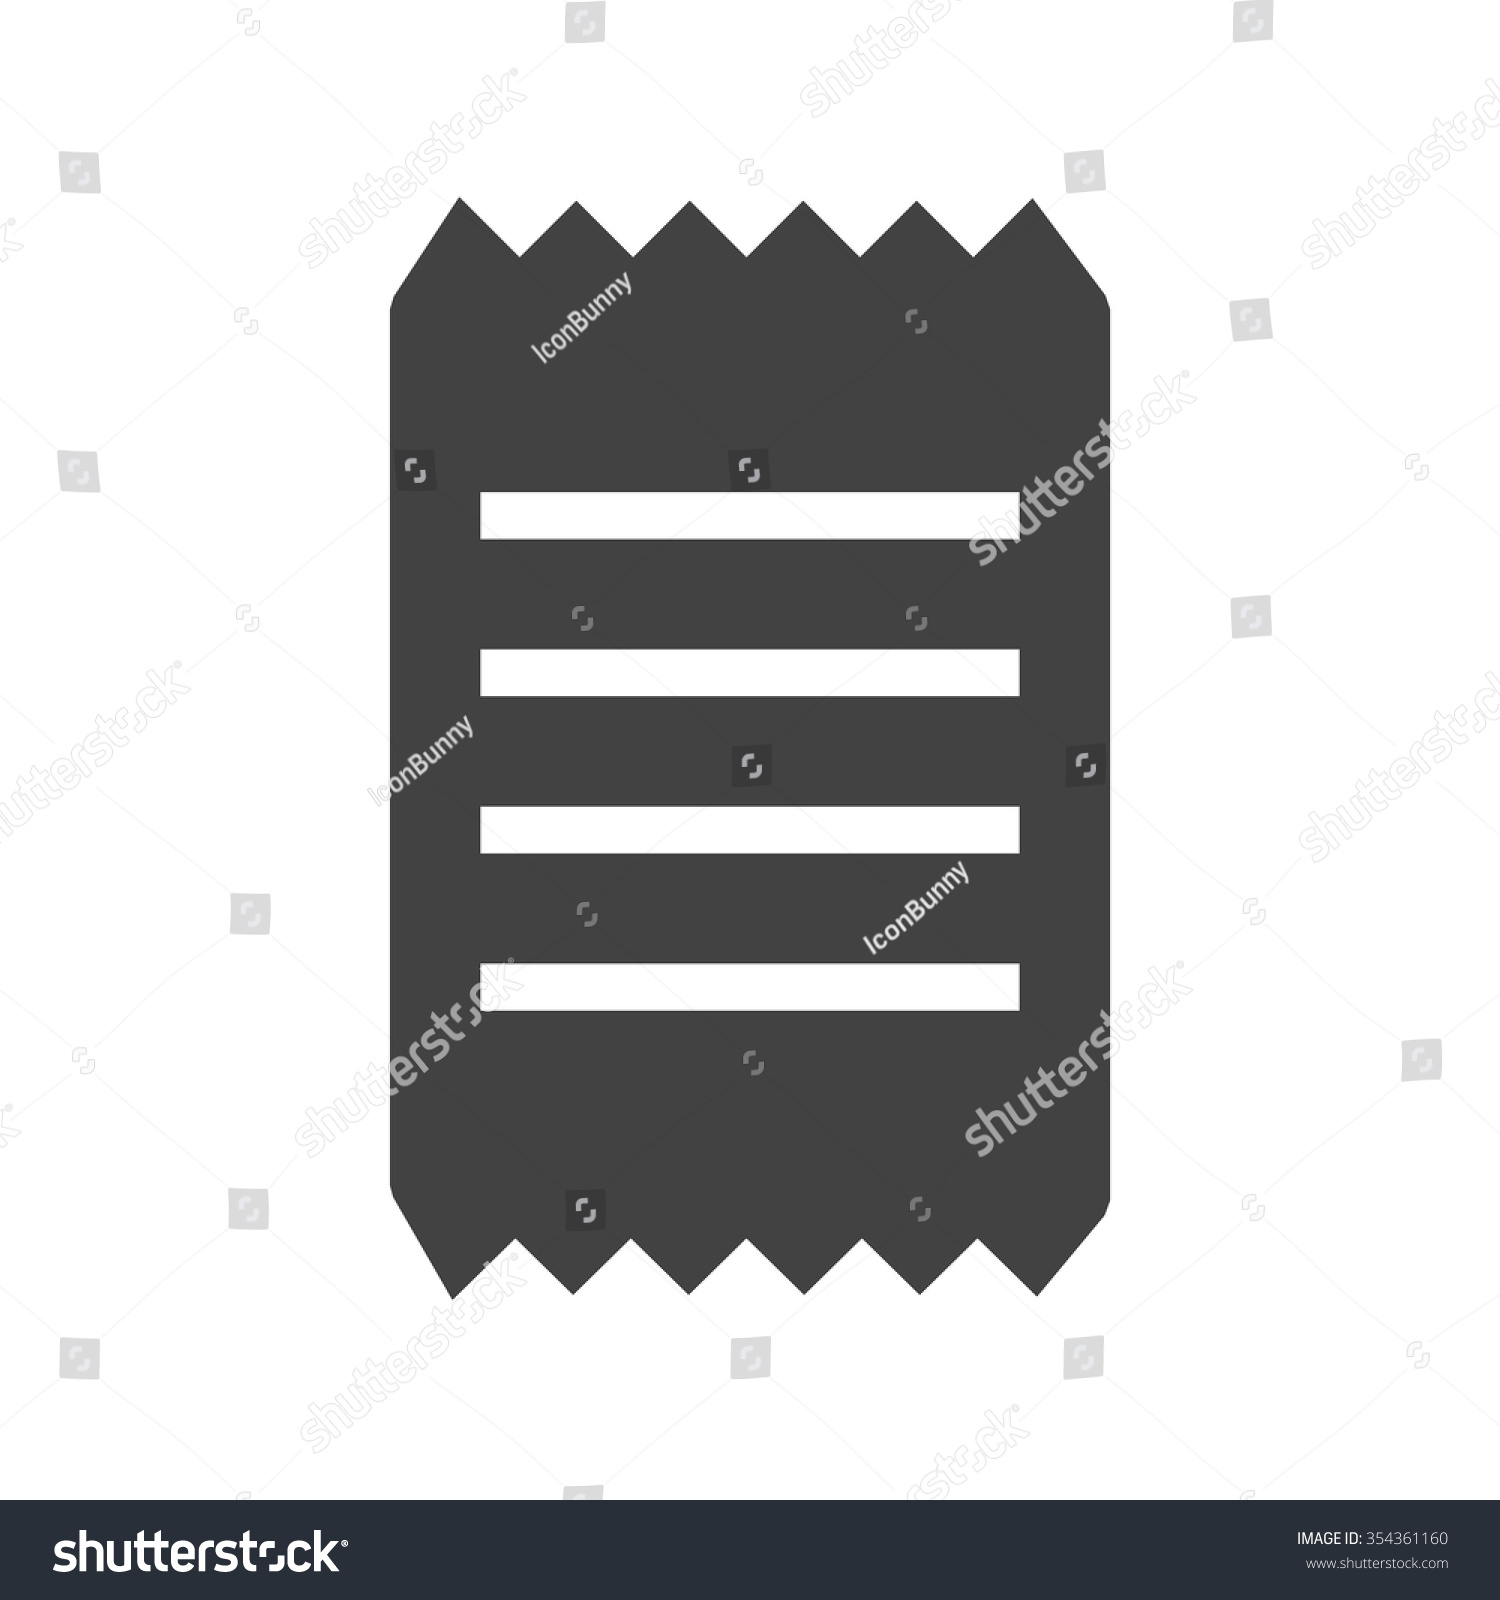 Amazon Gift Receipts Excel Receipt Invoice Bill Icon Vector Image Stock Vector   Carbon Receipt Book with Invoice Model Pdf Receipt Invoice Bill Icon Vector Image Can Also Be Used For Material  Design Invoice Template For Excel 2010 Pdf